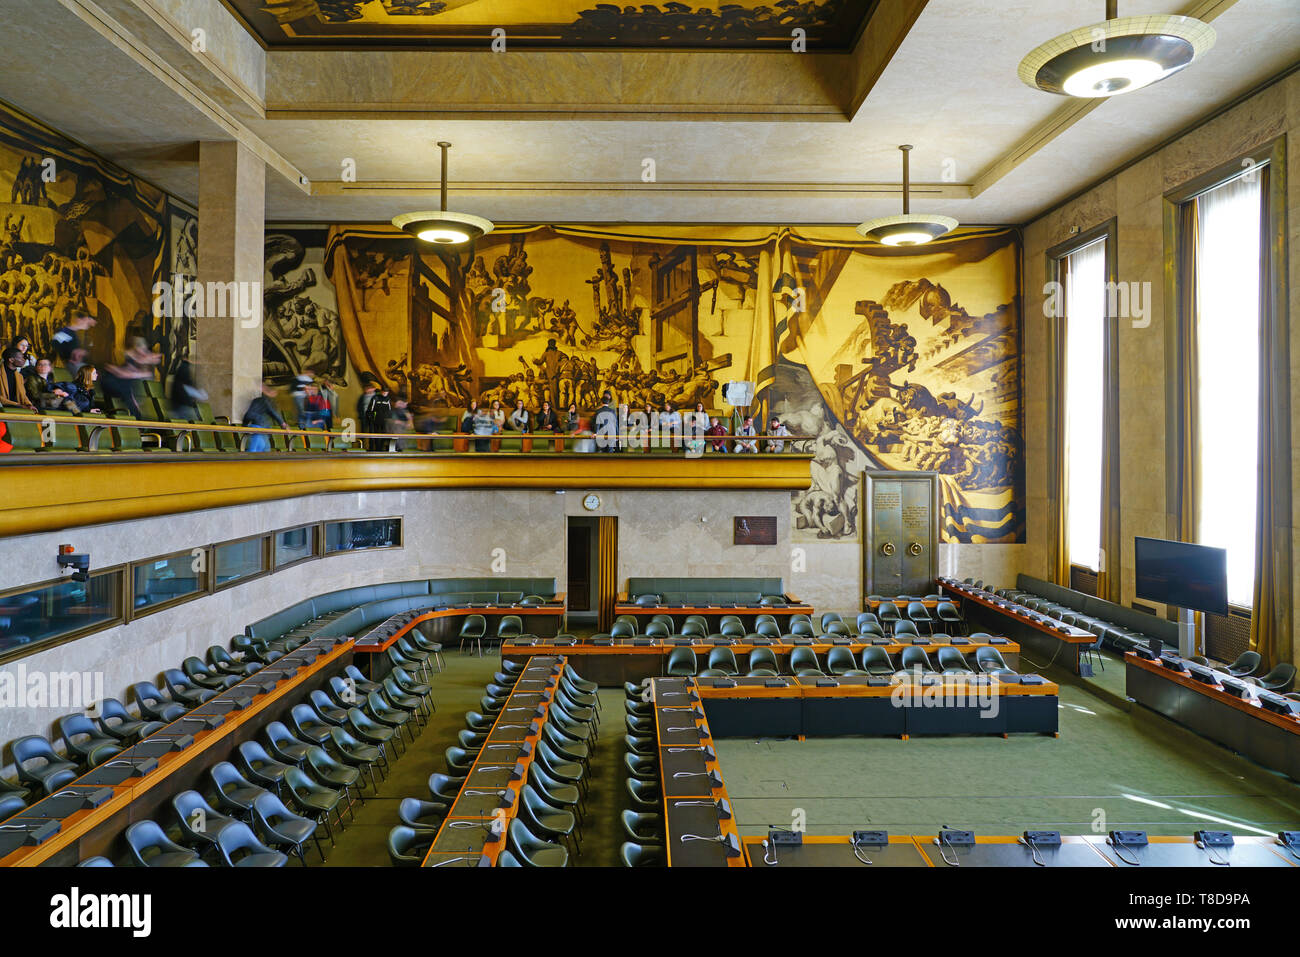 GENEVA, SWITZERLAND -5 APR 2019- Interior view of the United Nations Office at Geneva (UNOG) located in the Palais des Nations building in Geneva, Swi - Stock Image